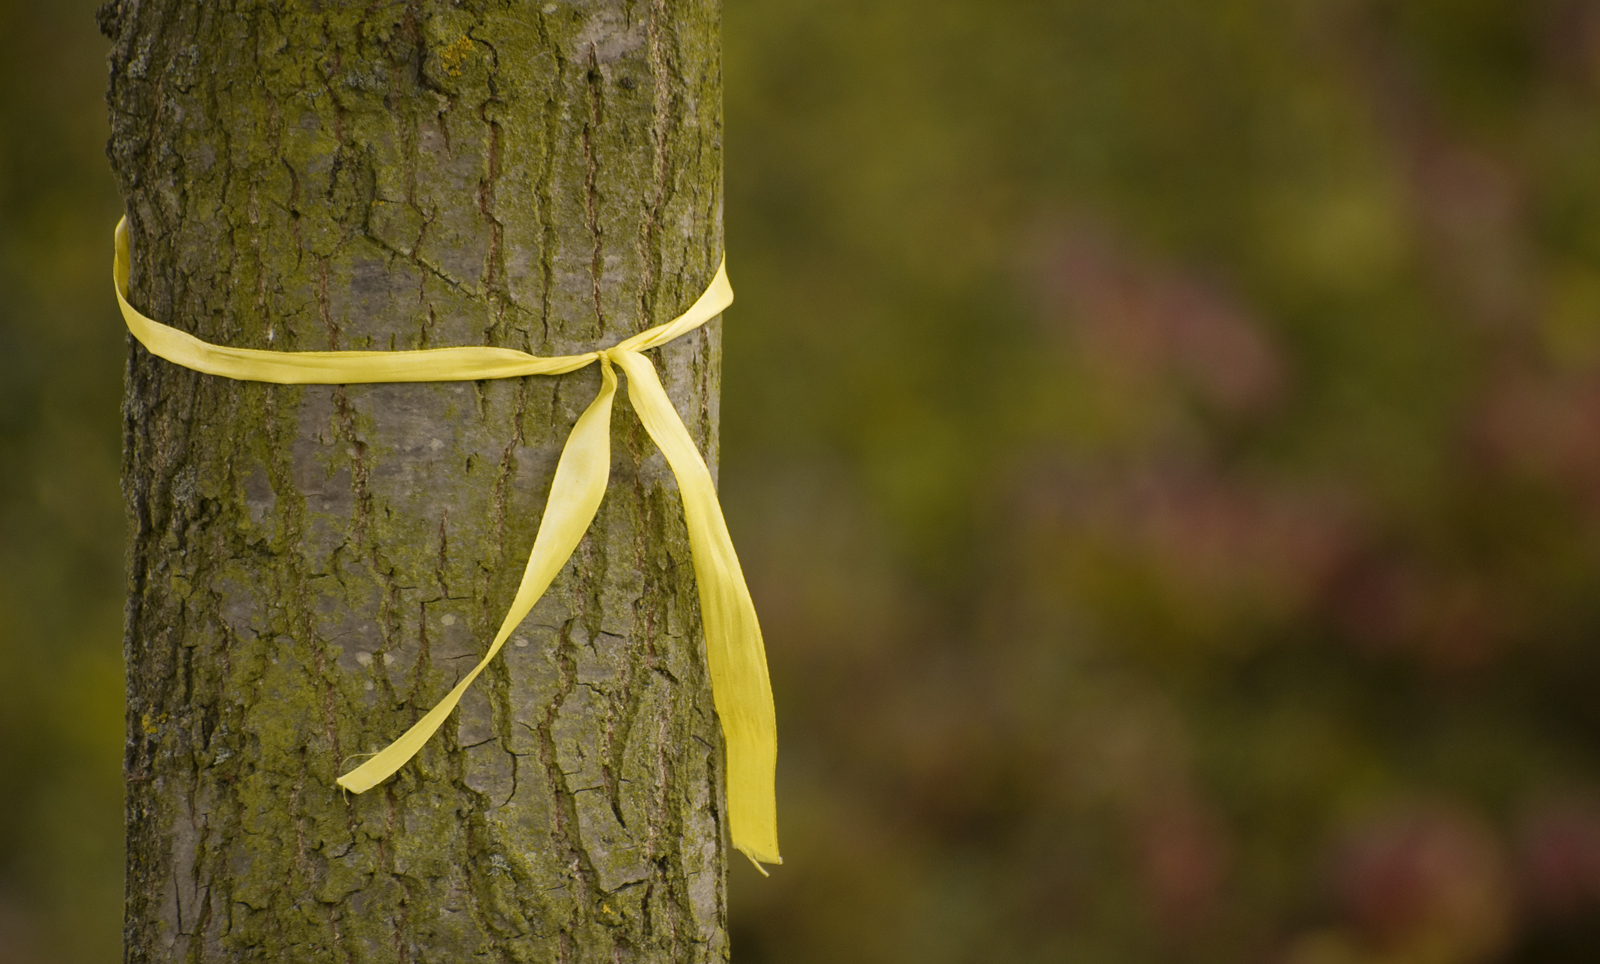 tie a yellow ribbon round the ole oak tree photo - 1